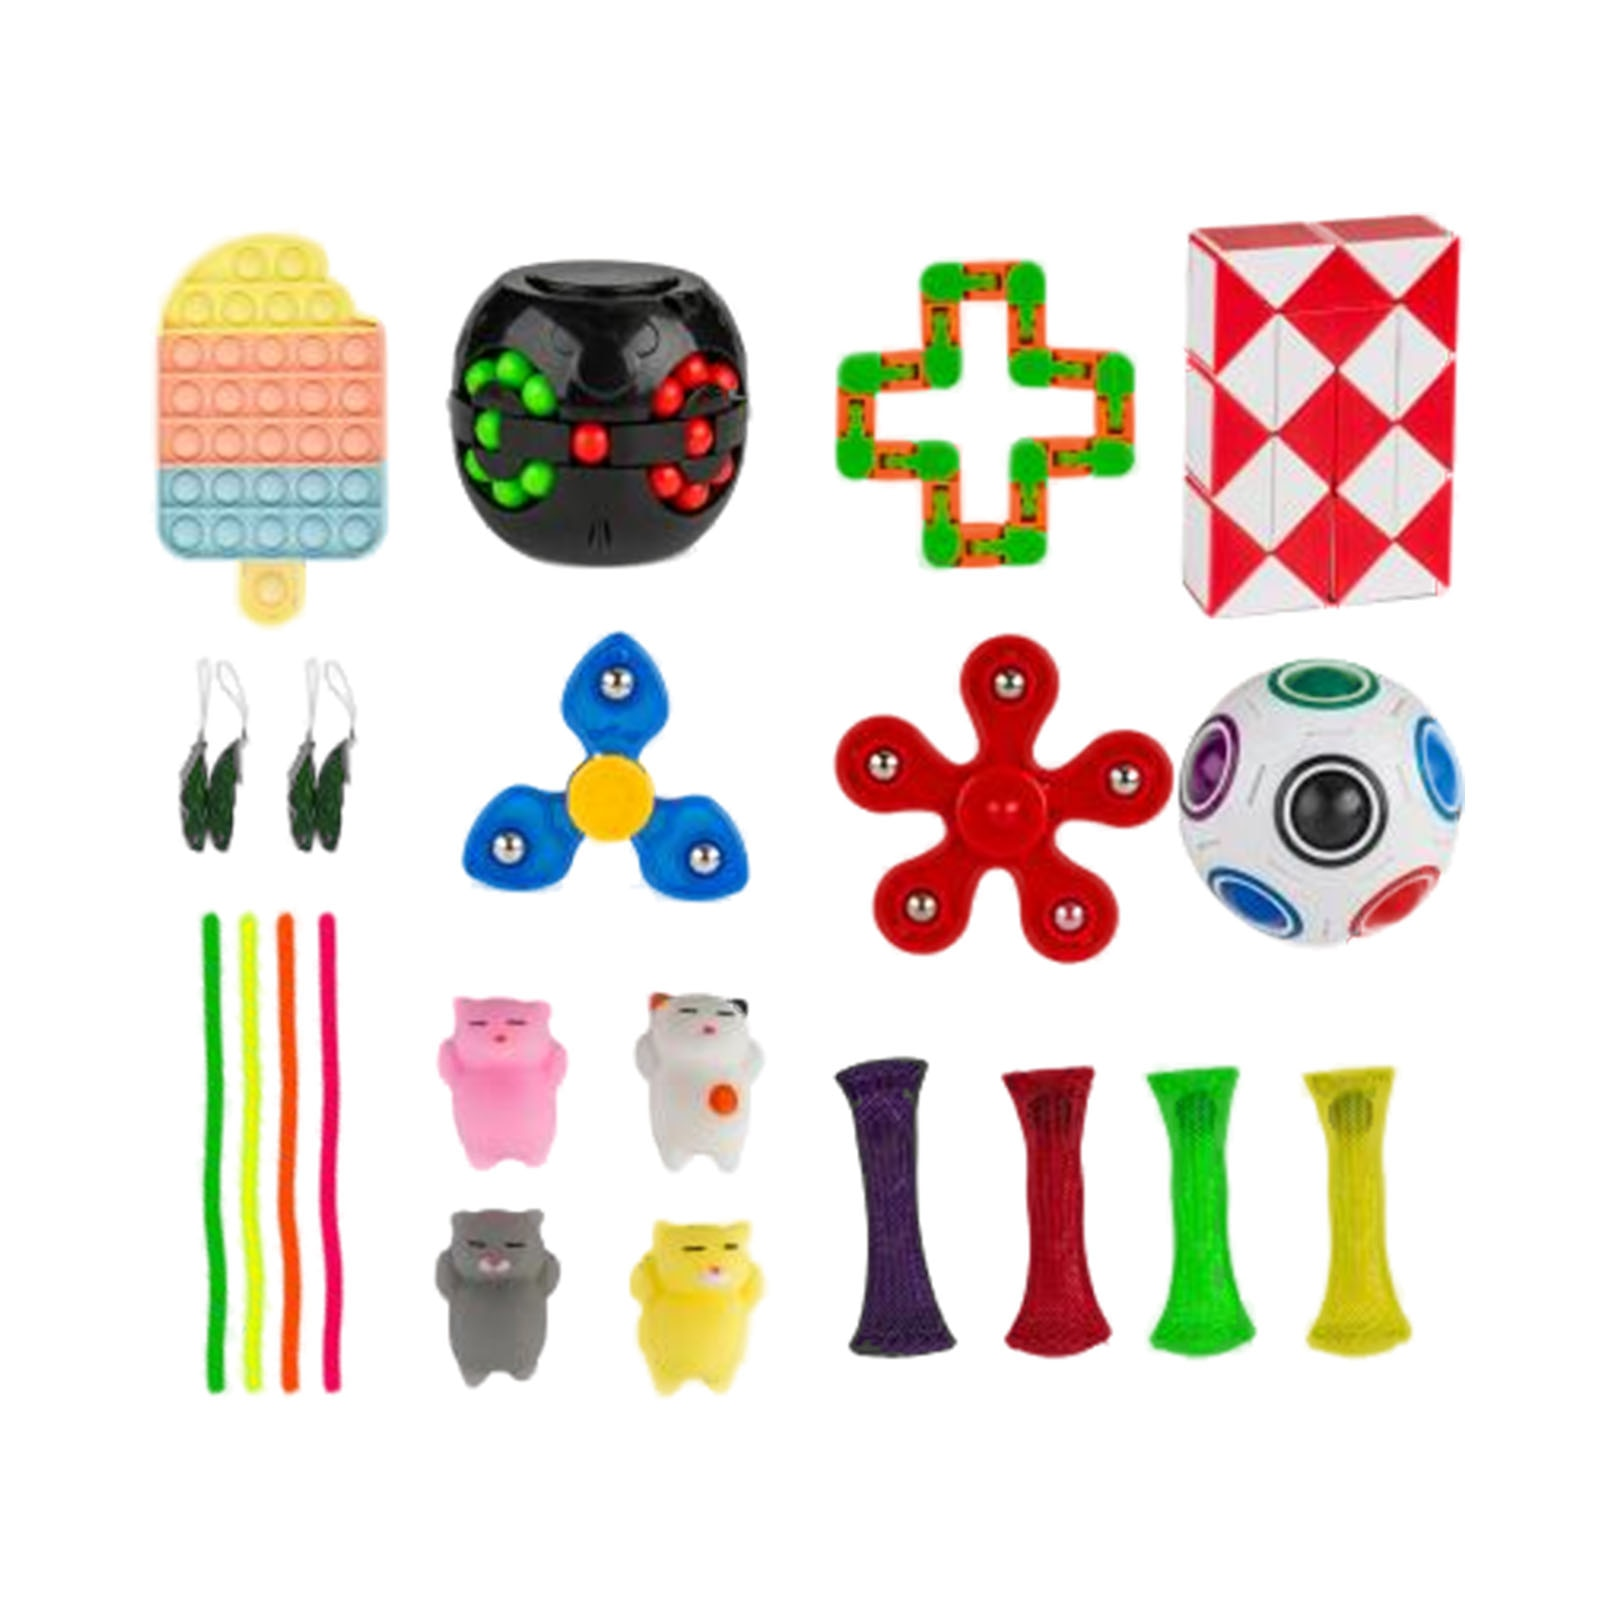 24/21Pcs Fidget Toys Pack Funny Gift for Children Adult Antistress Figet Toys Autism Anxiety Relief Stress Sensory Toy Set enlarge